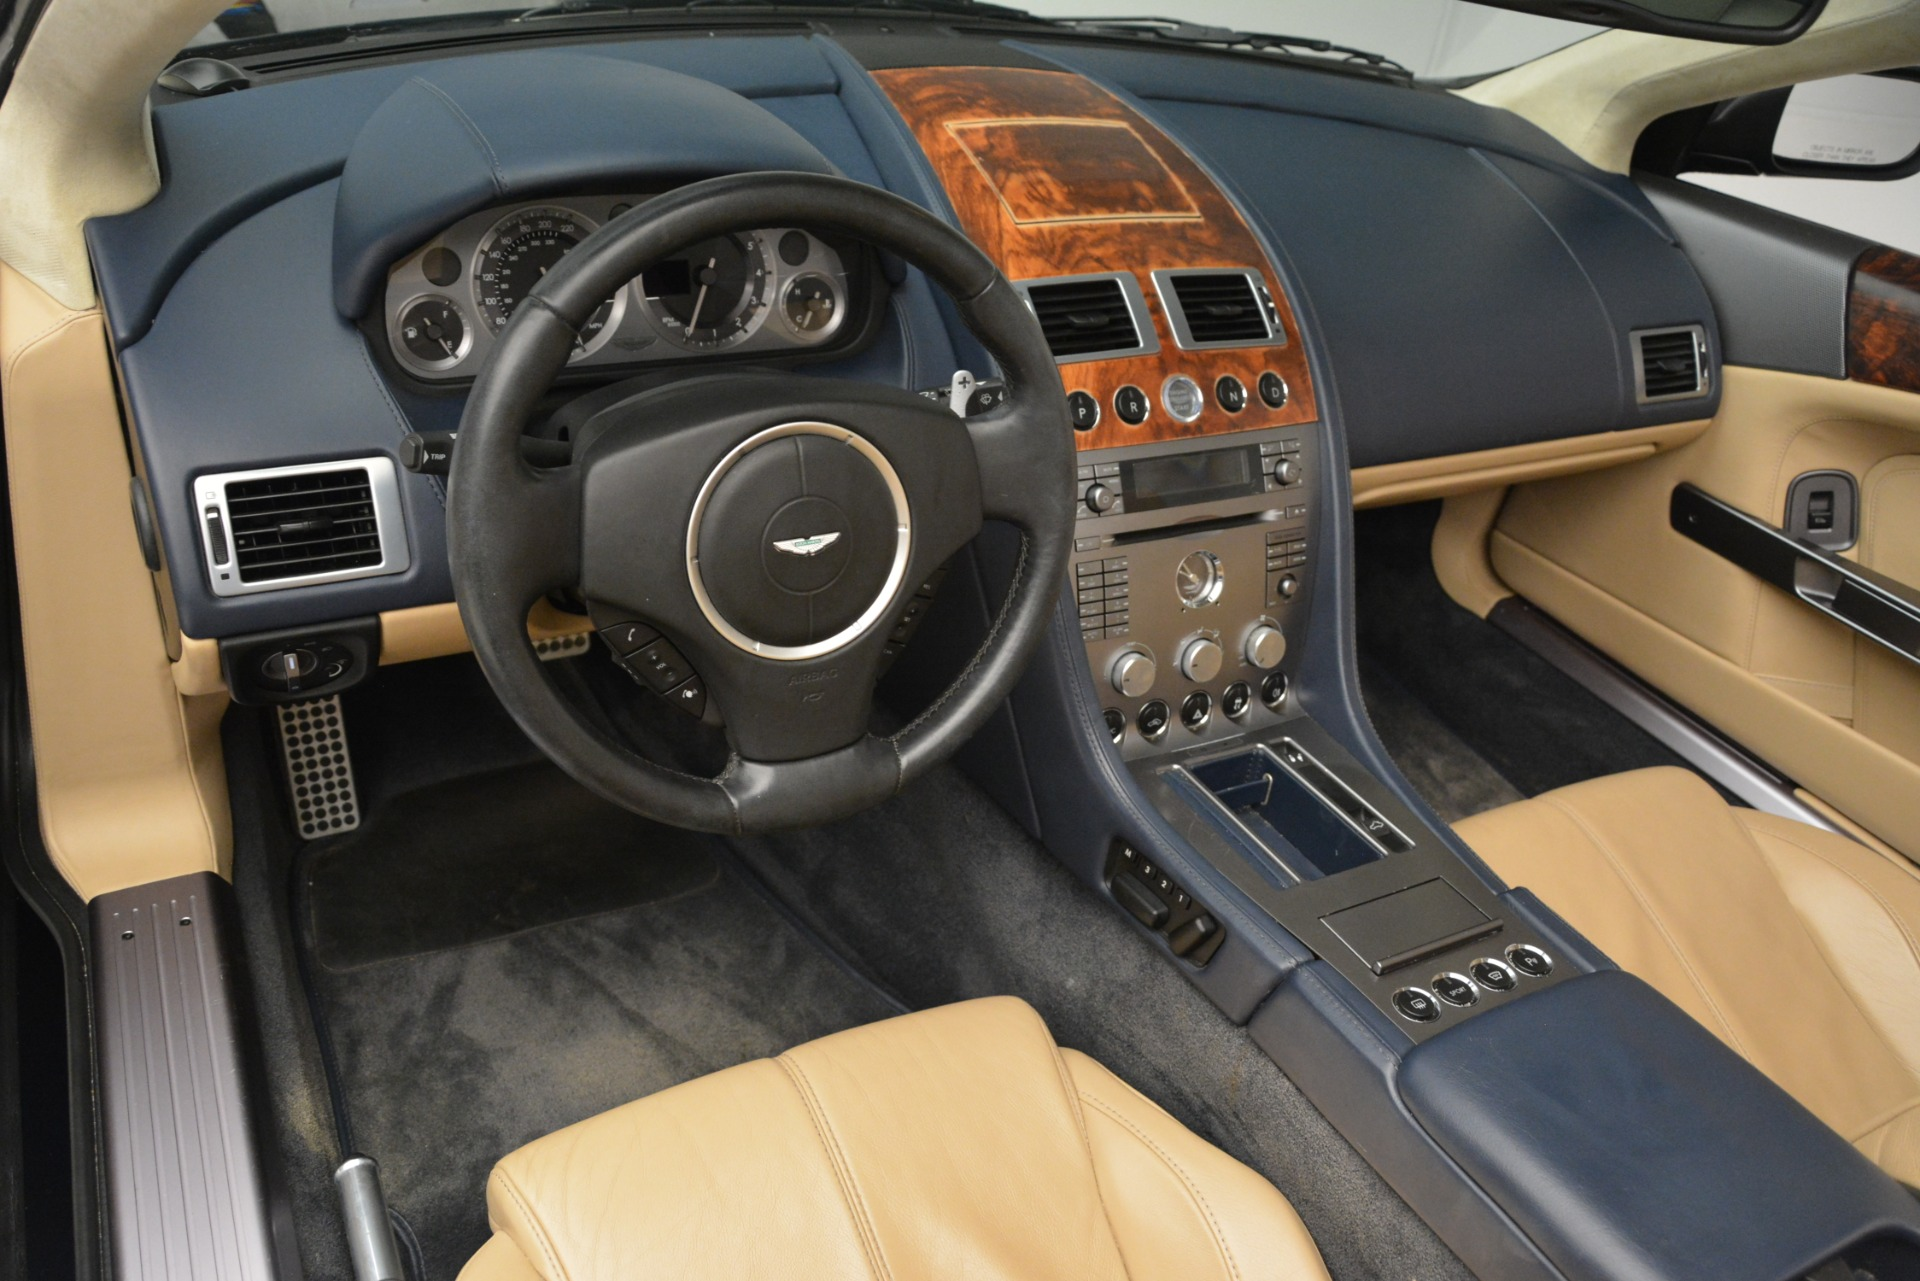 Used 2007 Aston Martin DB9 Convertible For Sale In Westport, CT 3291_p14